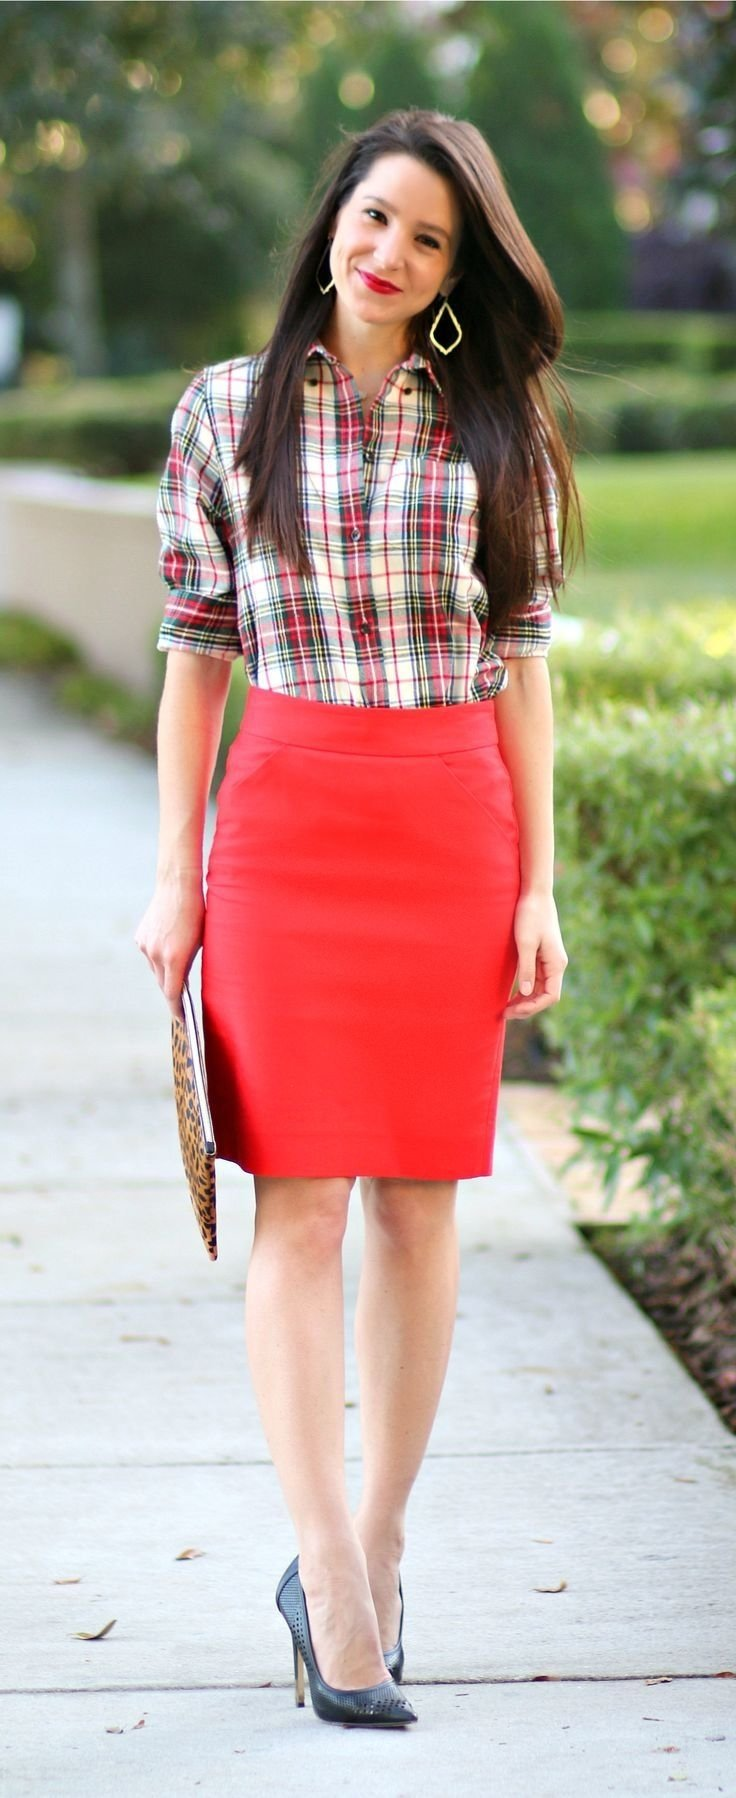 10 Perfect Red Pencil Skirt Outfit Ideas 448 best red dresses skirts and gowns images on pinterest 1950s 2020